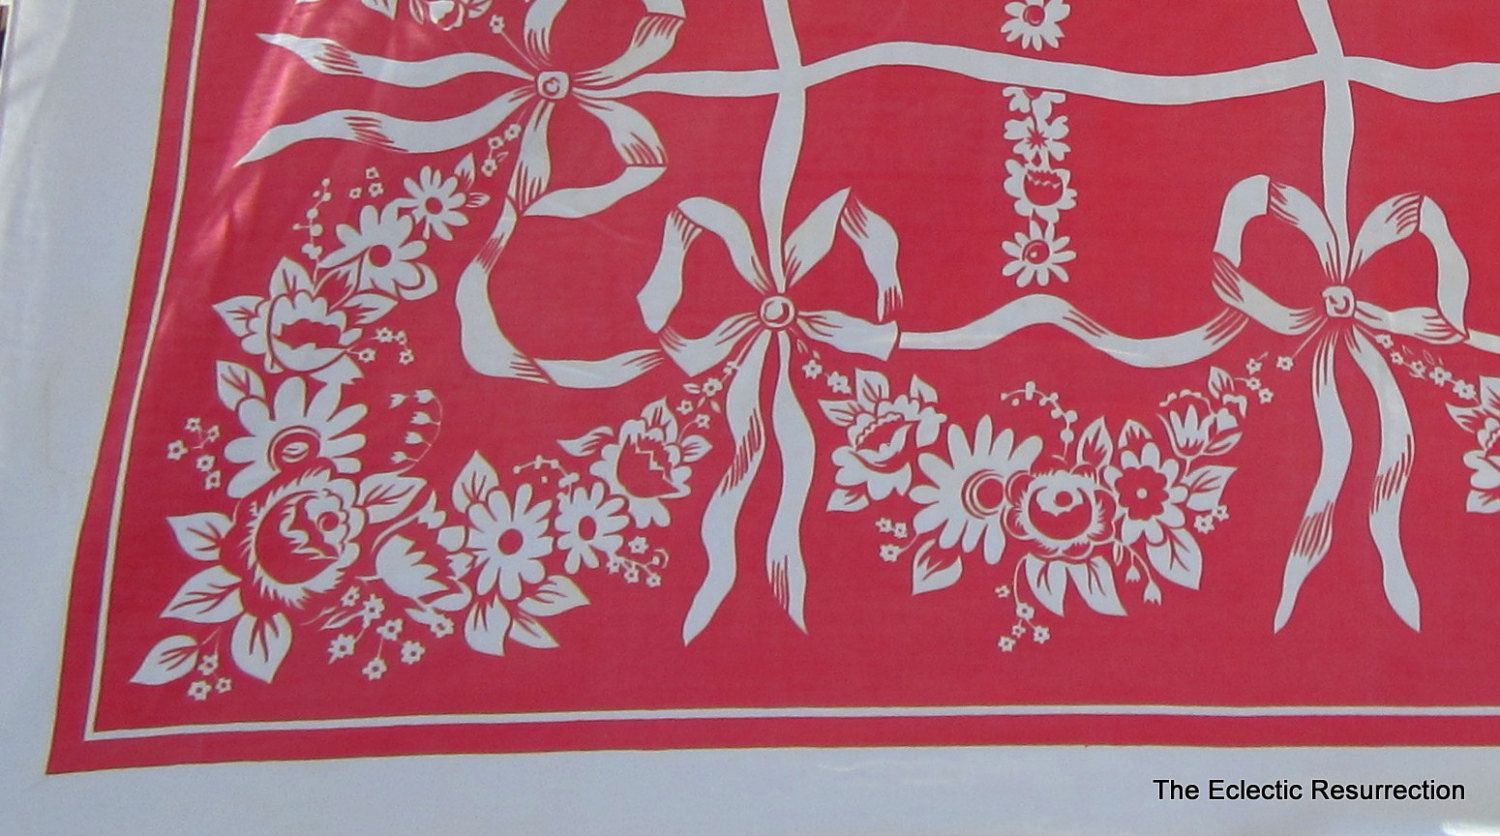 Vintage 1940s-1950s Tablecloth-Cotton Printed Floral Tablecloth Red and White 62x48. $18.00, via Etsy.